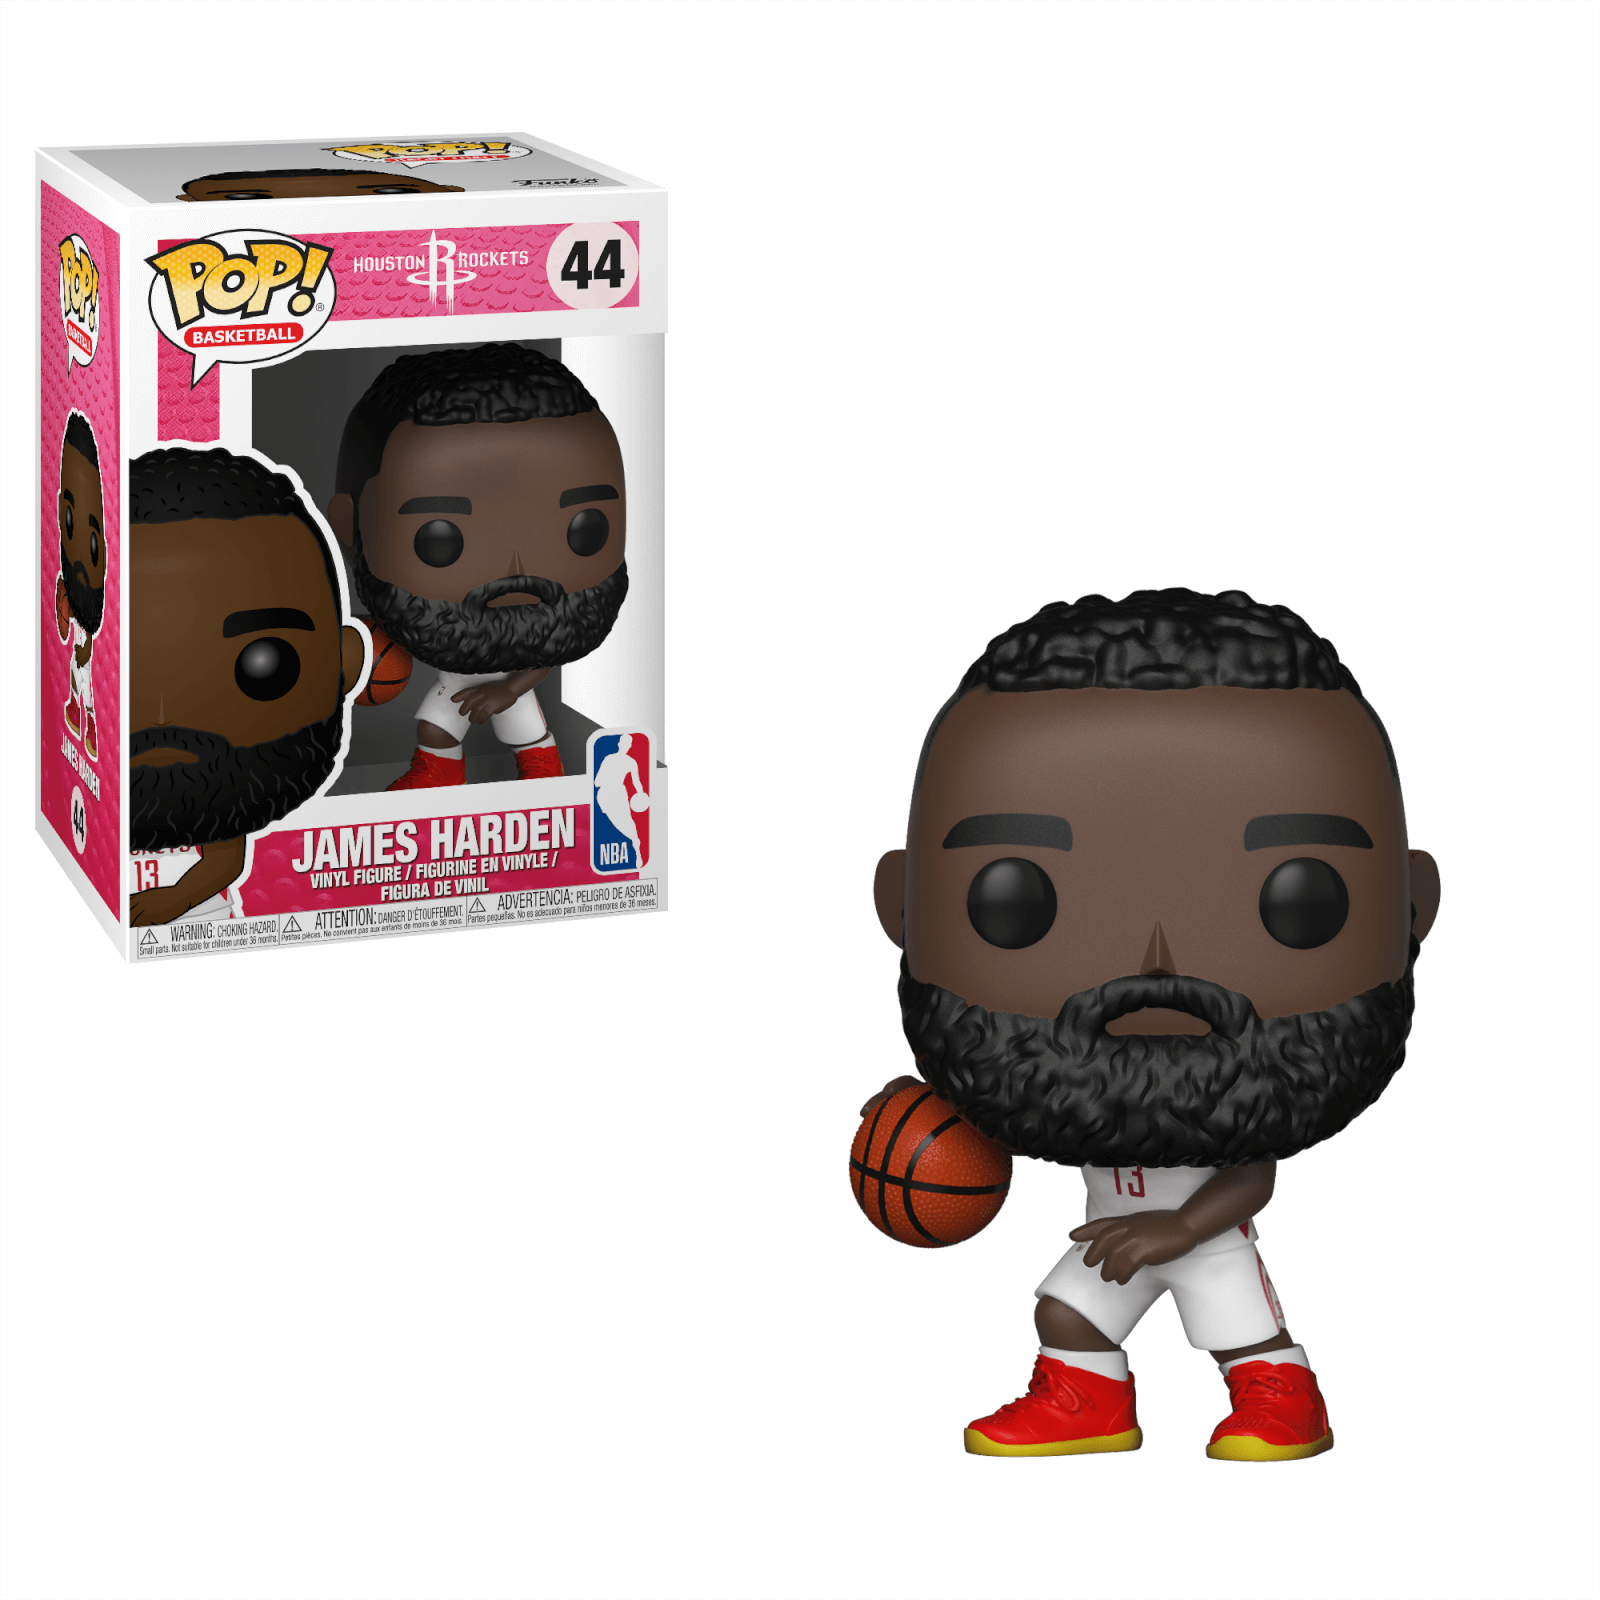 43cf5b033634 NBA Rockets James Harden Pop! Vinyl Figure